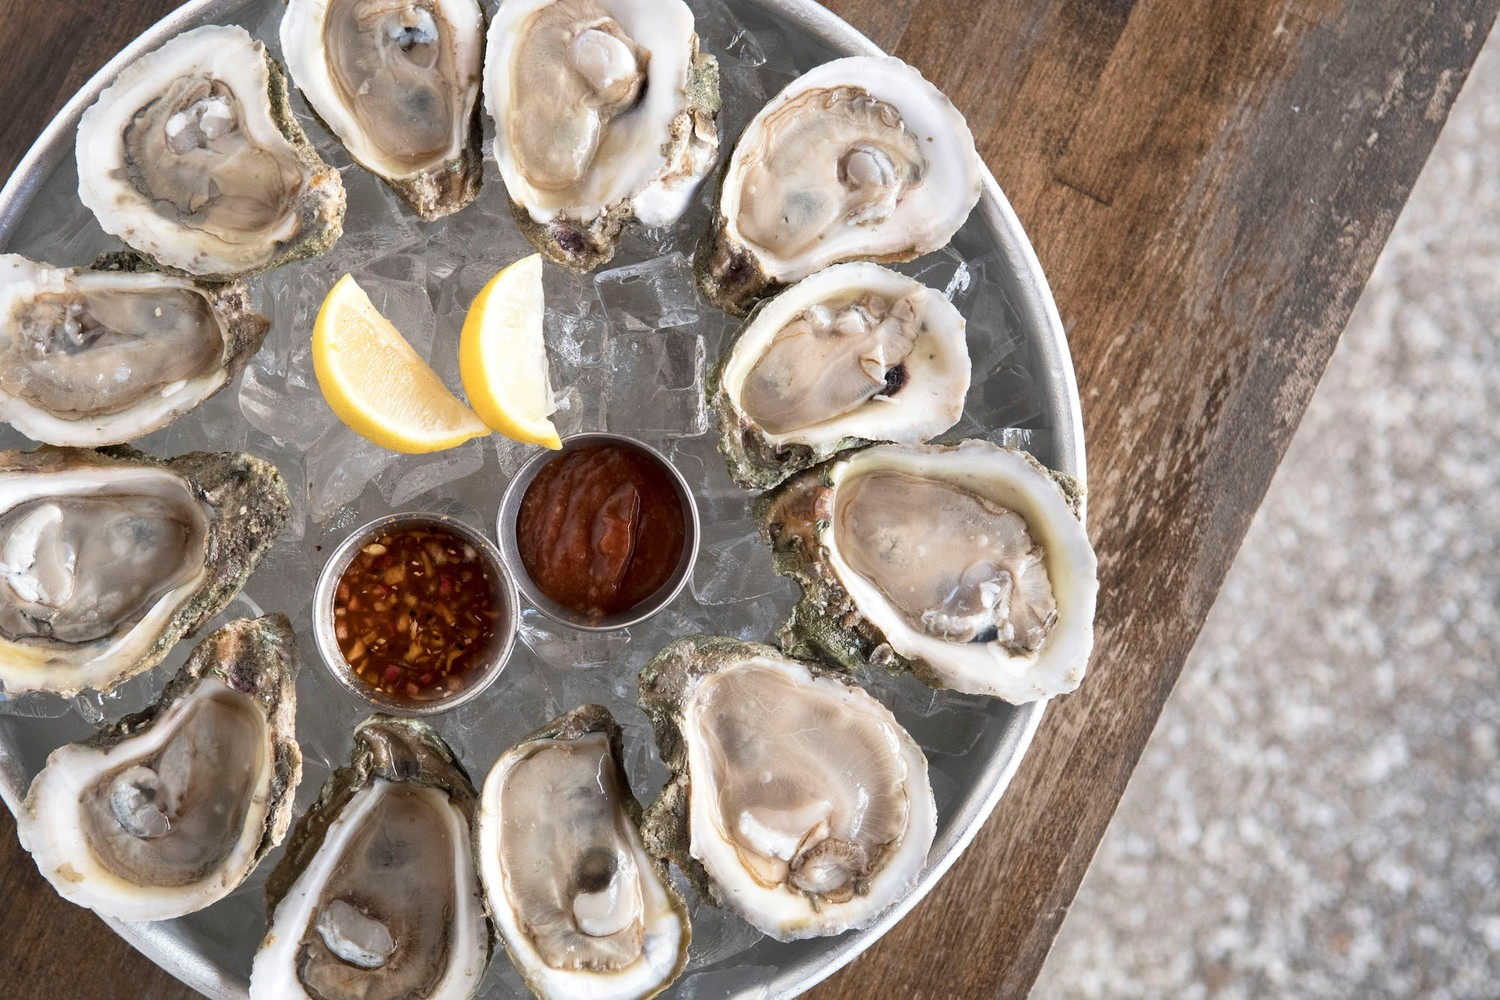 St. Augustine Seafood Company offers up fresh oysters from the Gulf Coast and other locales.